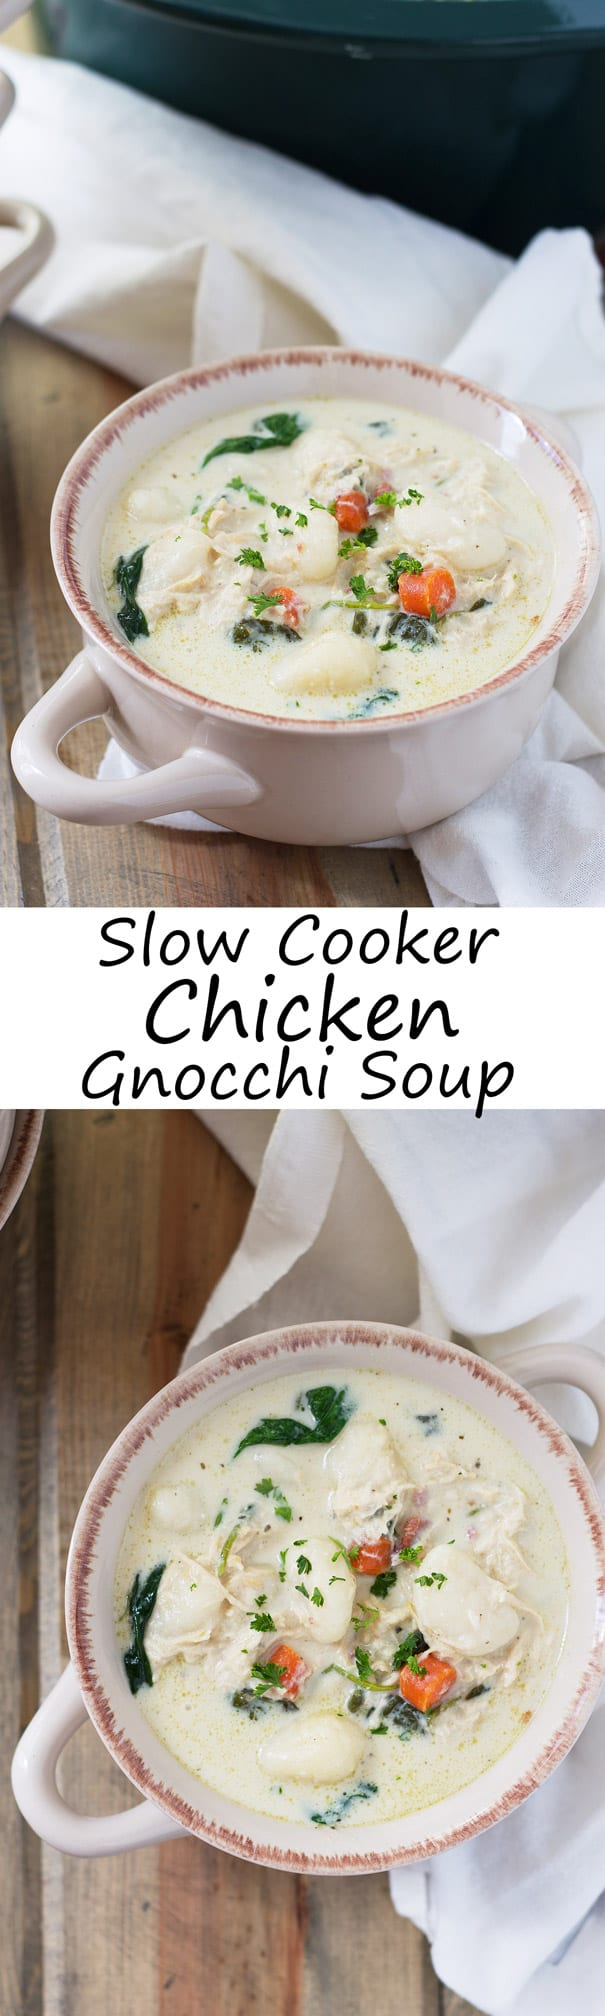 Slow Cooker Chicken and Gnocchi Soup- this wonderfully hearty and flavorful soup is a nice change of pace with its pillowy soft gnocchi and flavorful creamy broth. | Countryside Cravings